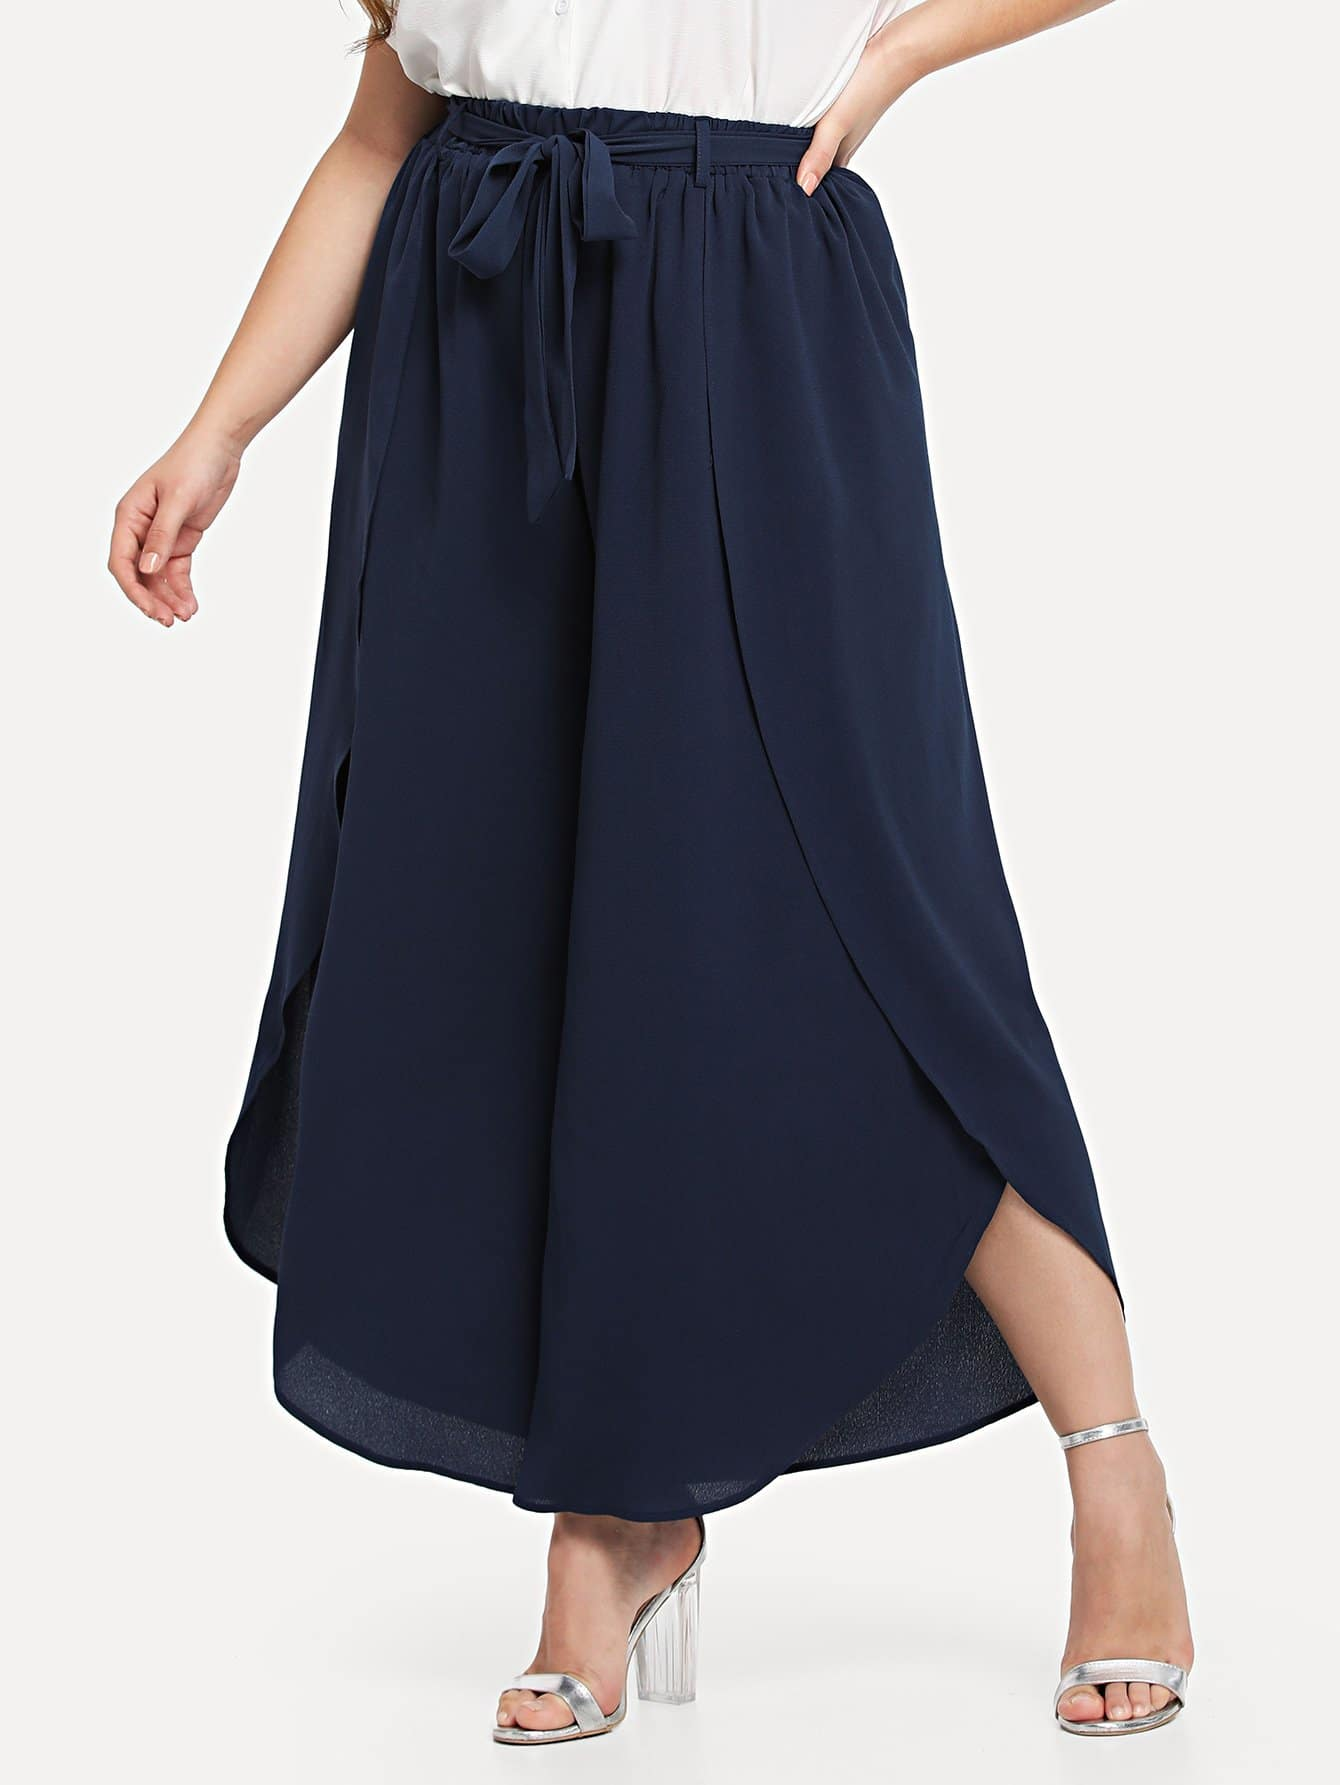 Self Belted Solid Wide Leg Pants self belted solid dress